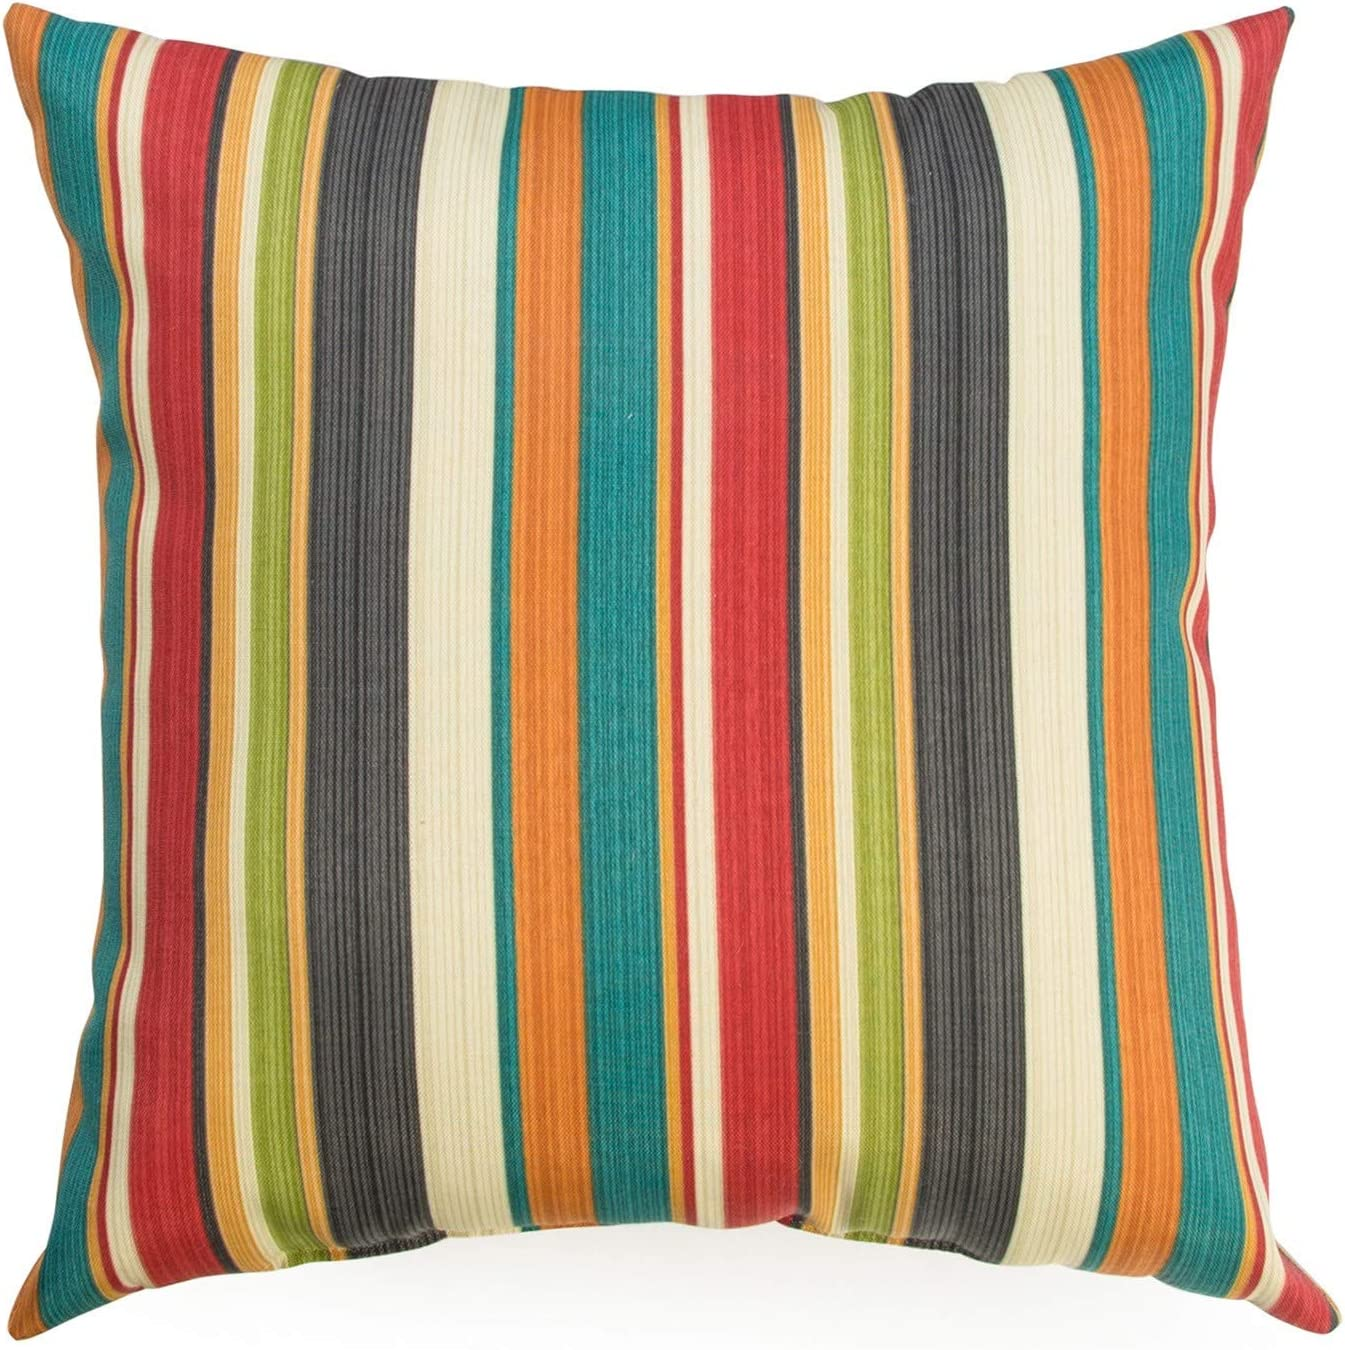 Greendale Home Fashions AZ4803S2-SUNSET Adobe Stripe Outdoor 17-inch Square Throw Pillow (Set of 2)